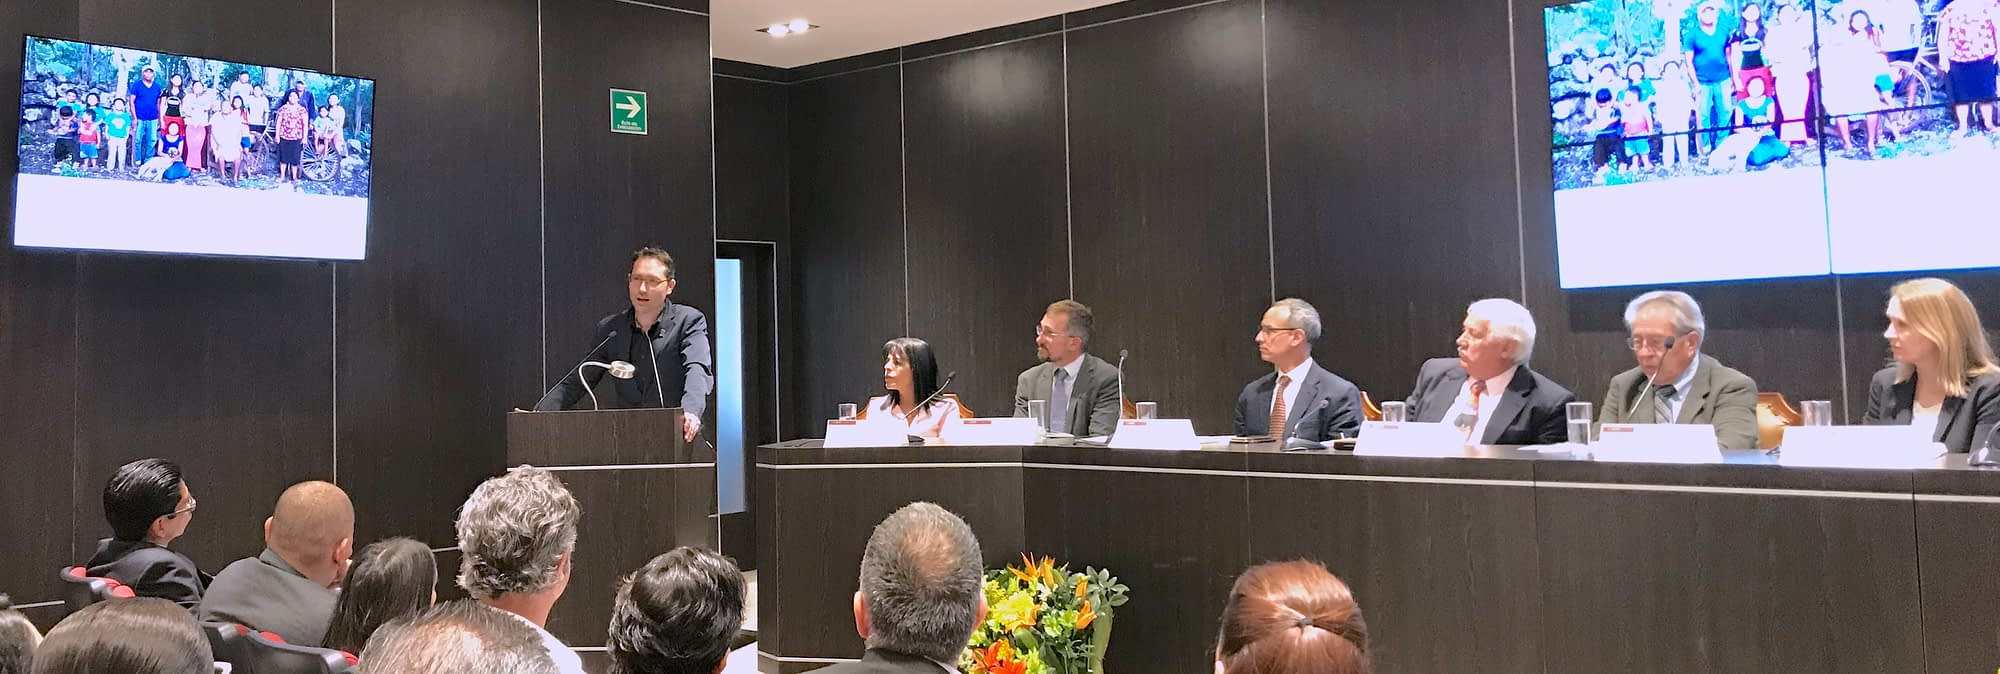 CIMMYT's director of innovative business strategies, Bram Govaerts (left), explained that three changes are needed to reduce the environmental impact of food systems in Mexico: innovation in production practices, reduction of food waste, and change of diets. (Photo: CIMMYT)